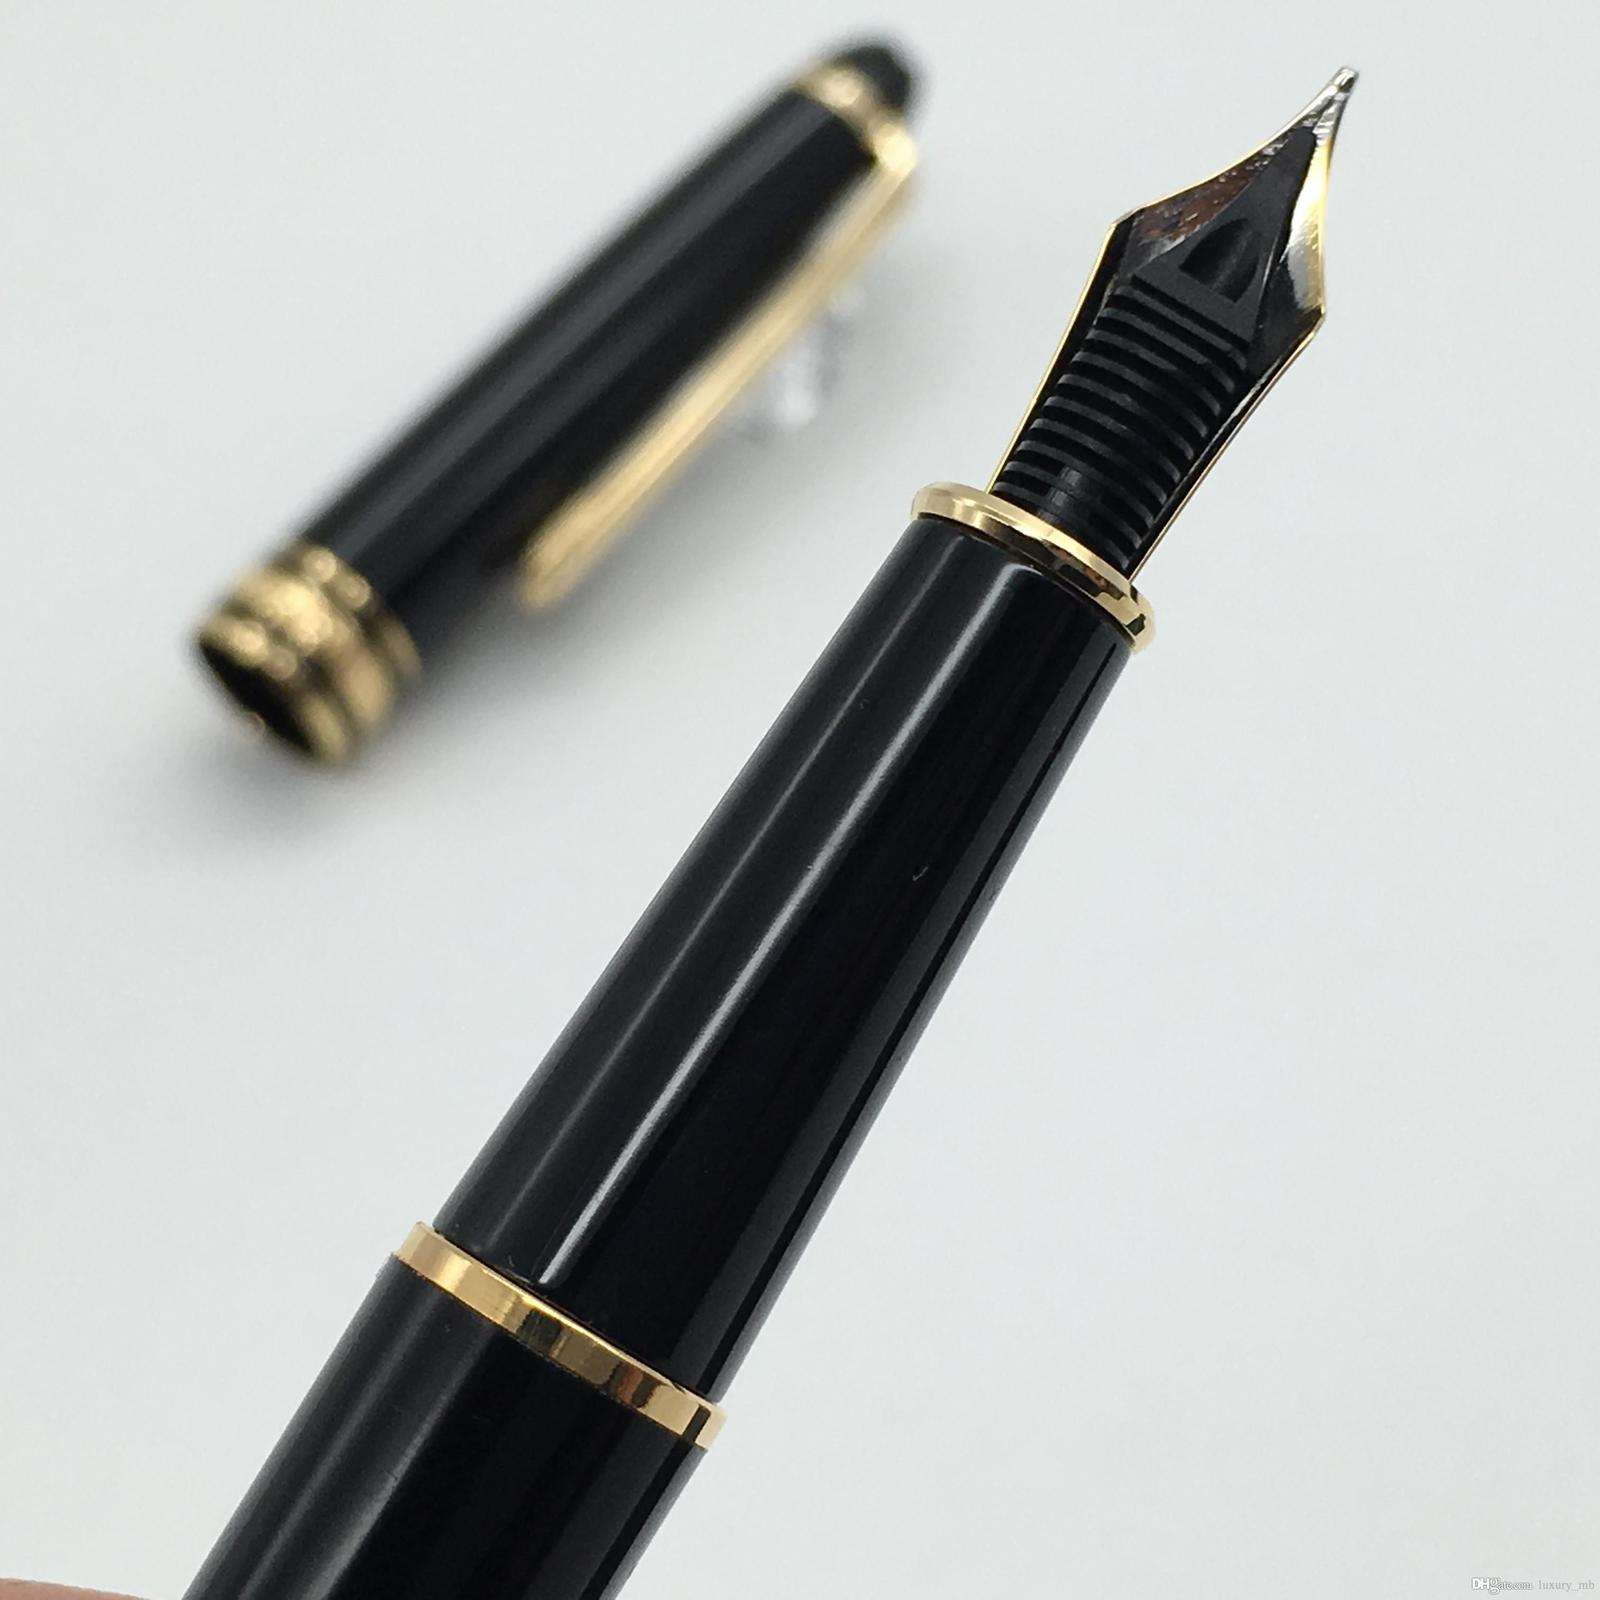 Top mb pen classique #163 fountain with 4810 Middle size 14K golden nib fountain